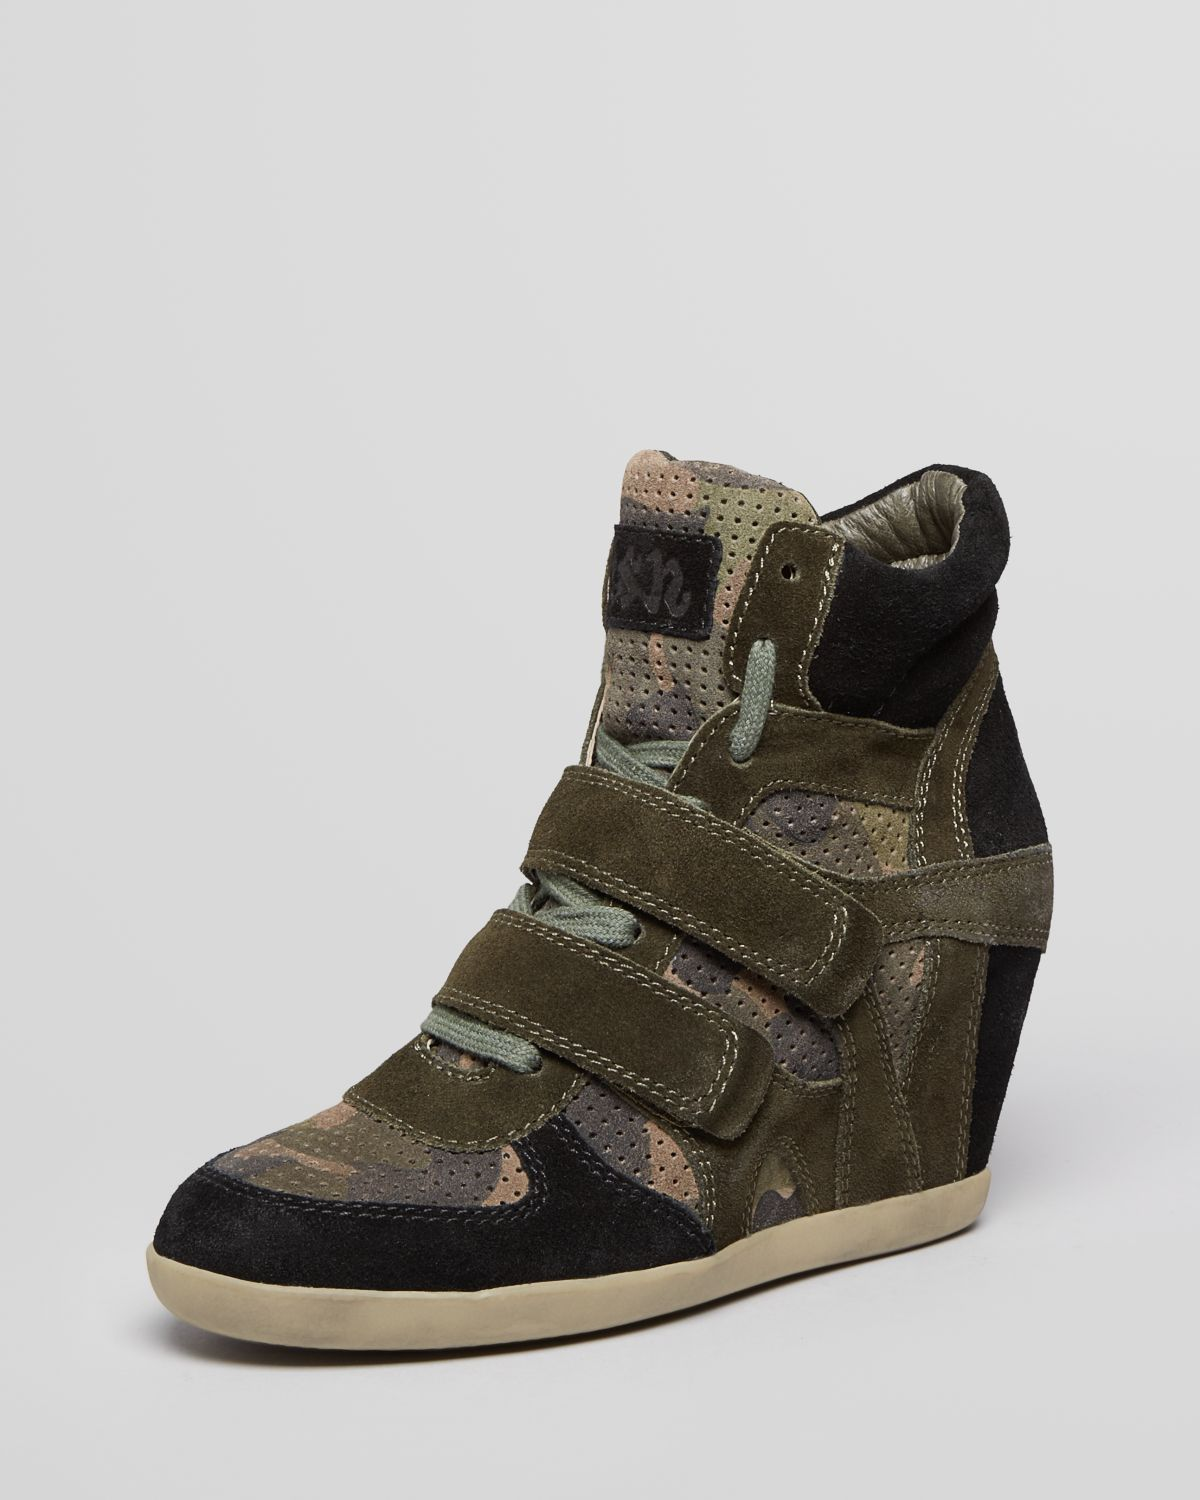 lyst ash high top wedge sneakers bea bis in black. Black Bedroom Furniture Sets. Home Design Ideas